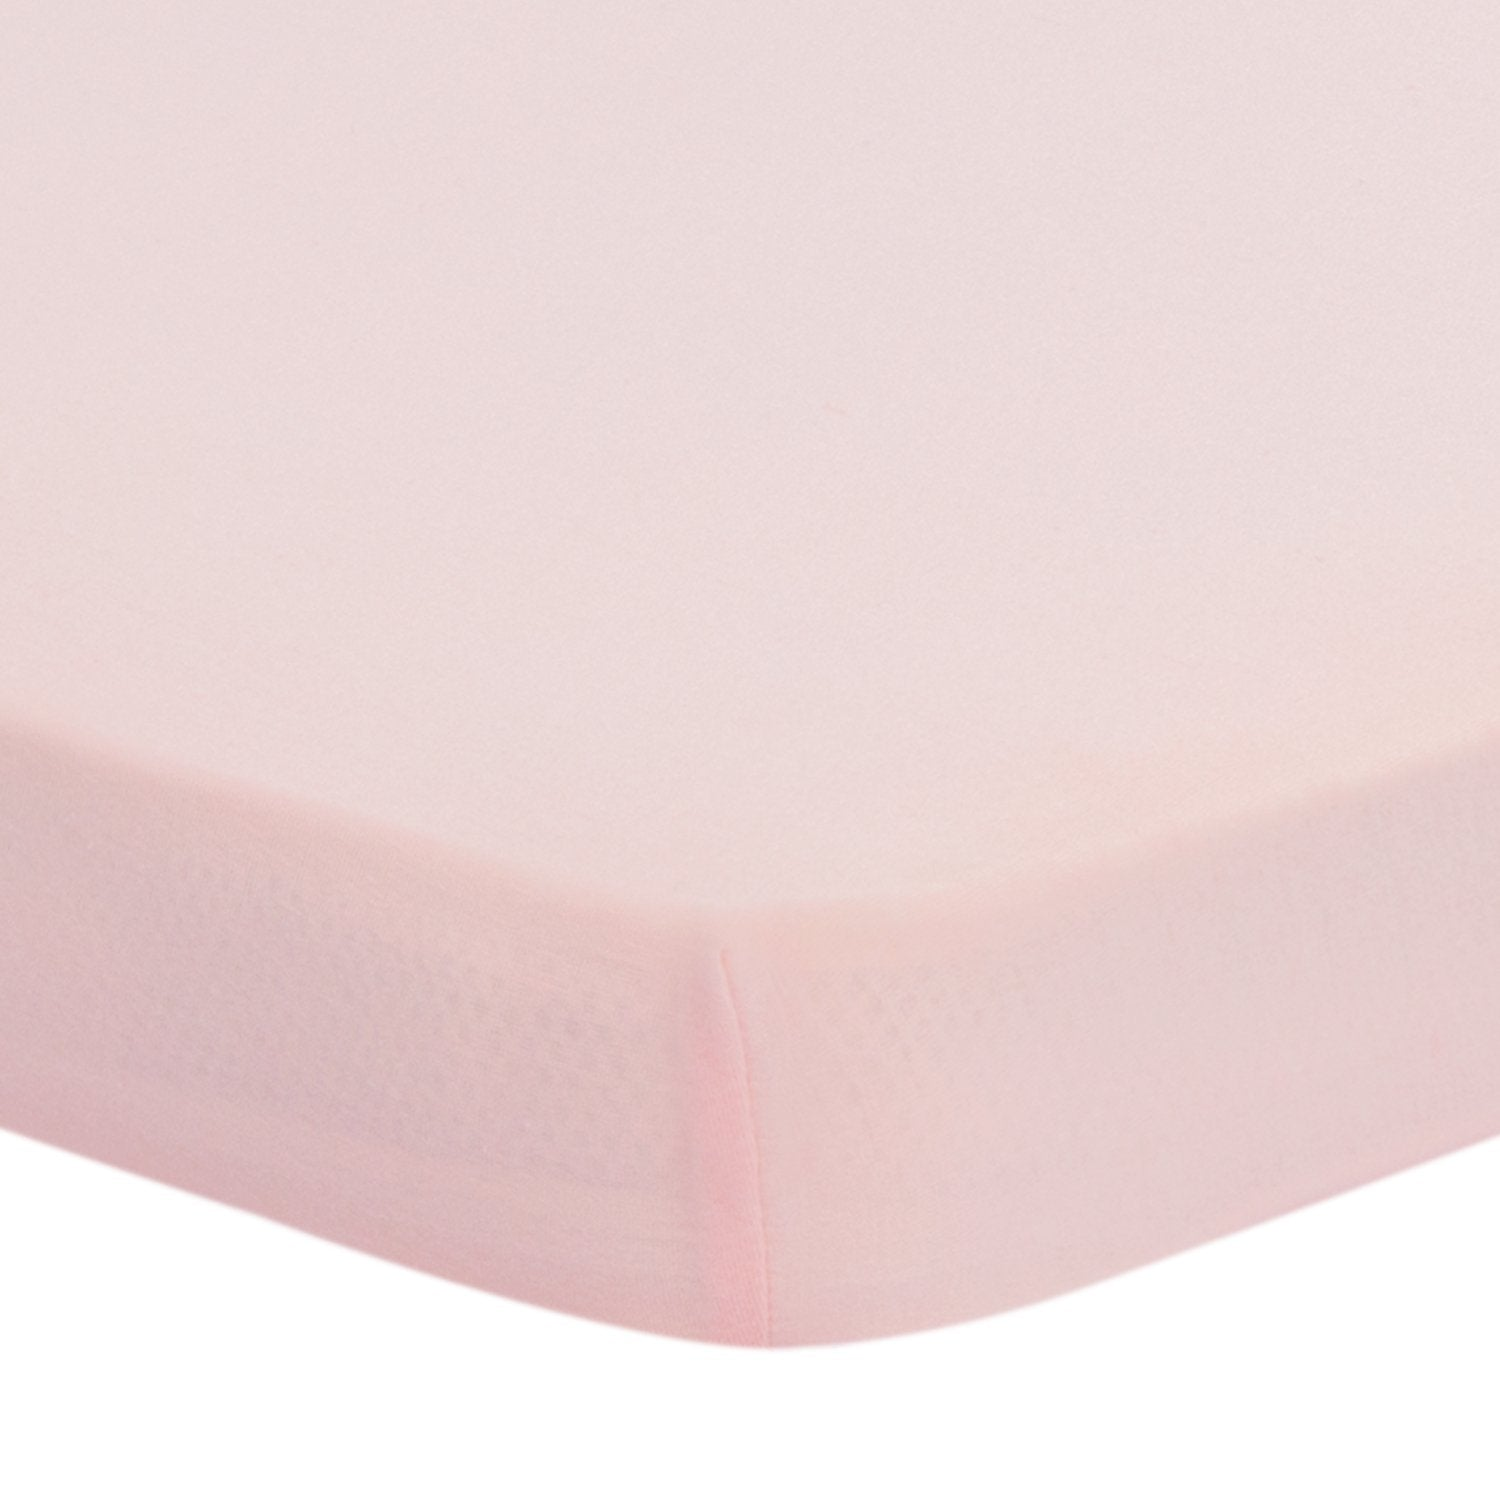 Jersey Knit Pack N Play Sheet Fitted 27'' x 39'' x 5'', Peachy Pink